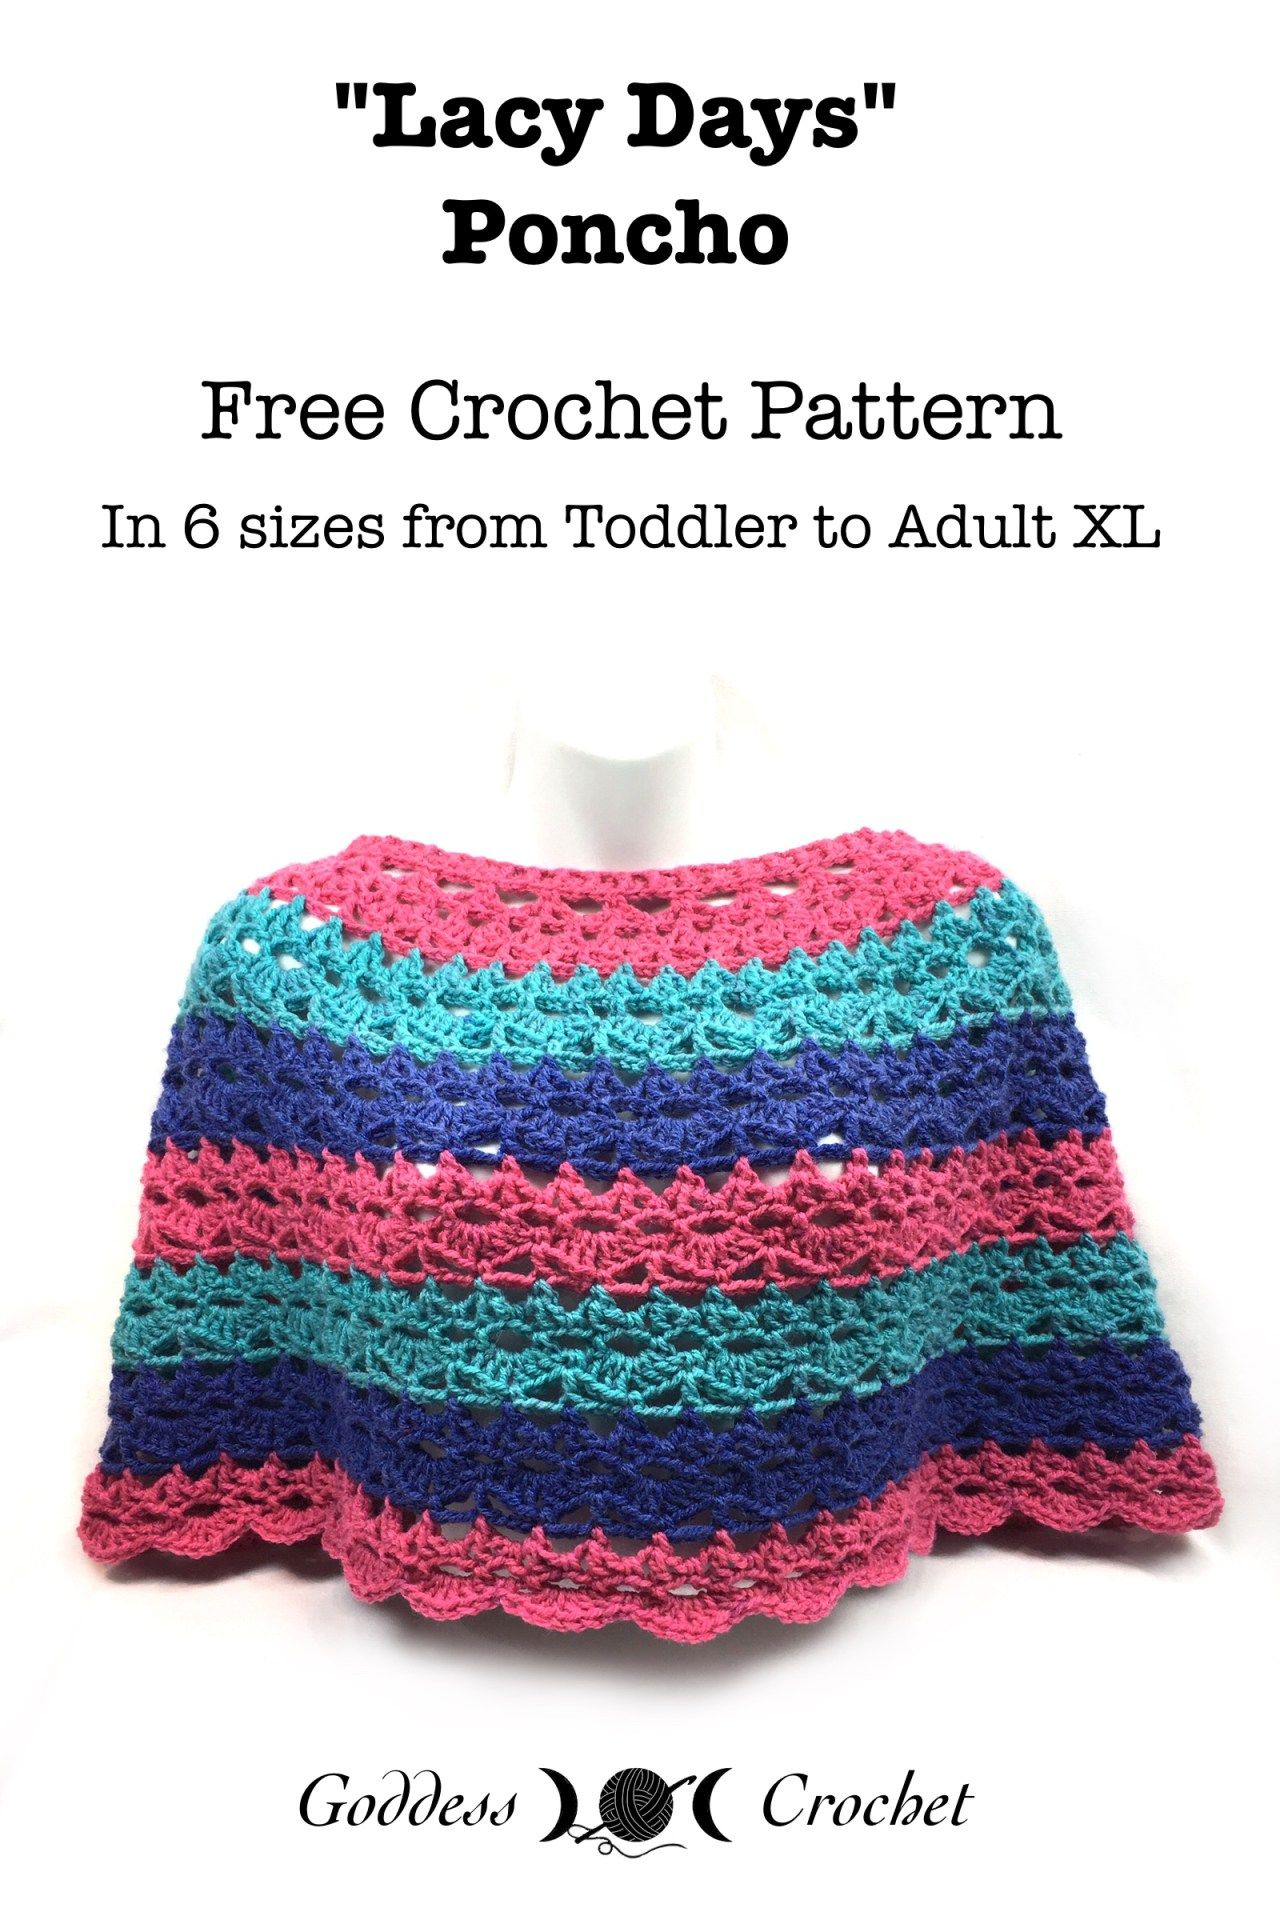 Lacy Days Poncho Free Crochet Pattern Crocheted Clothing